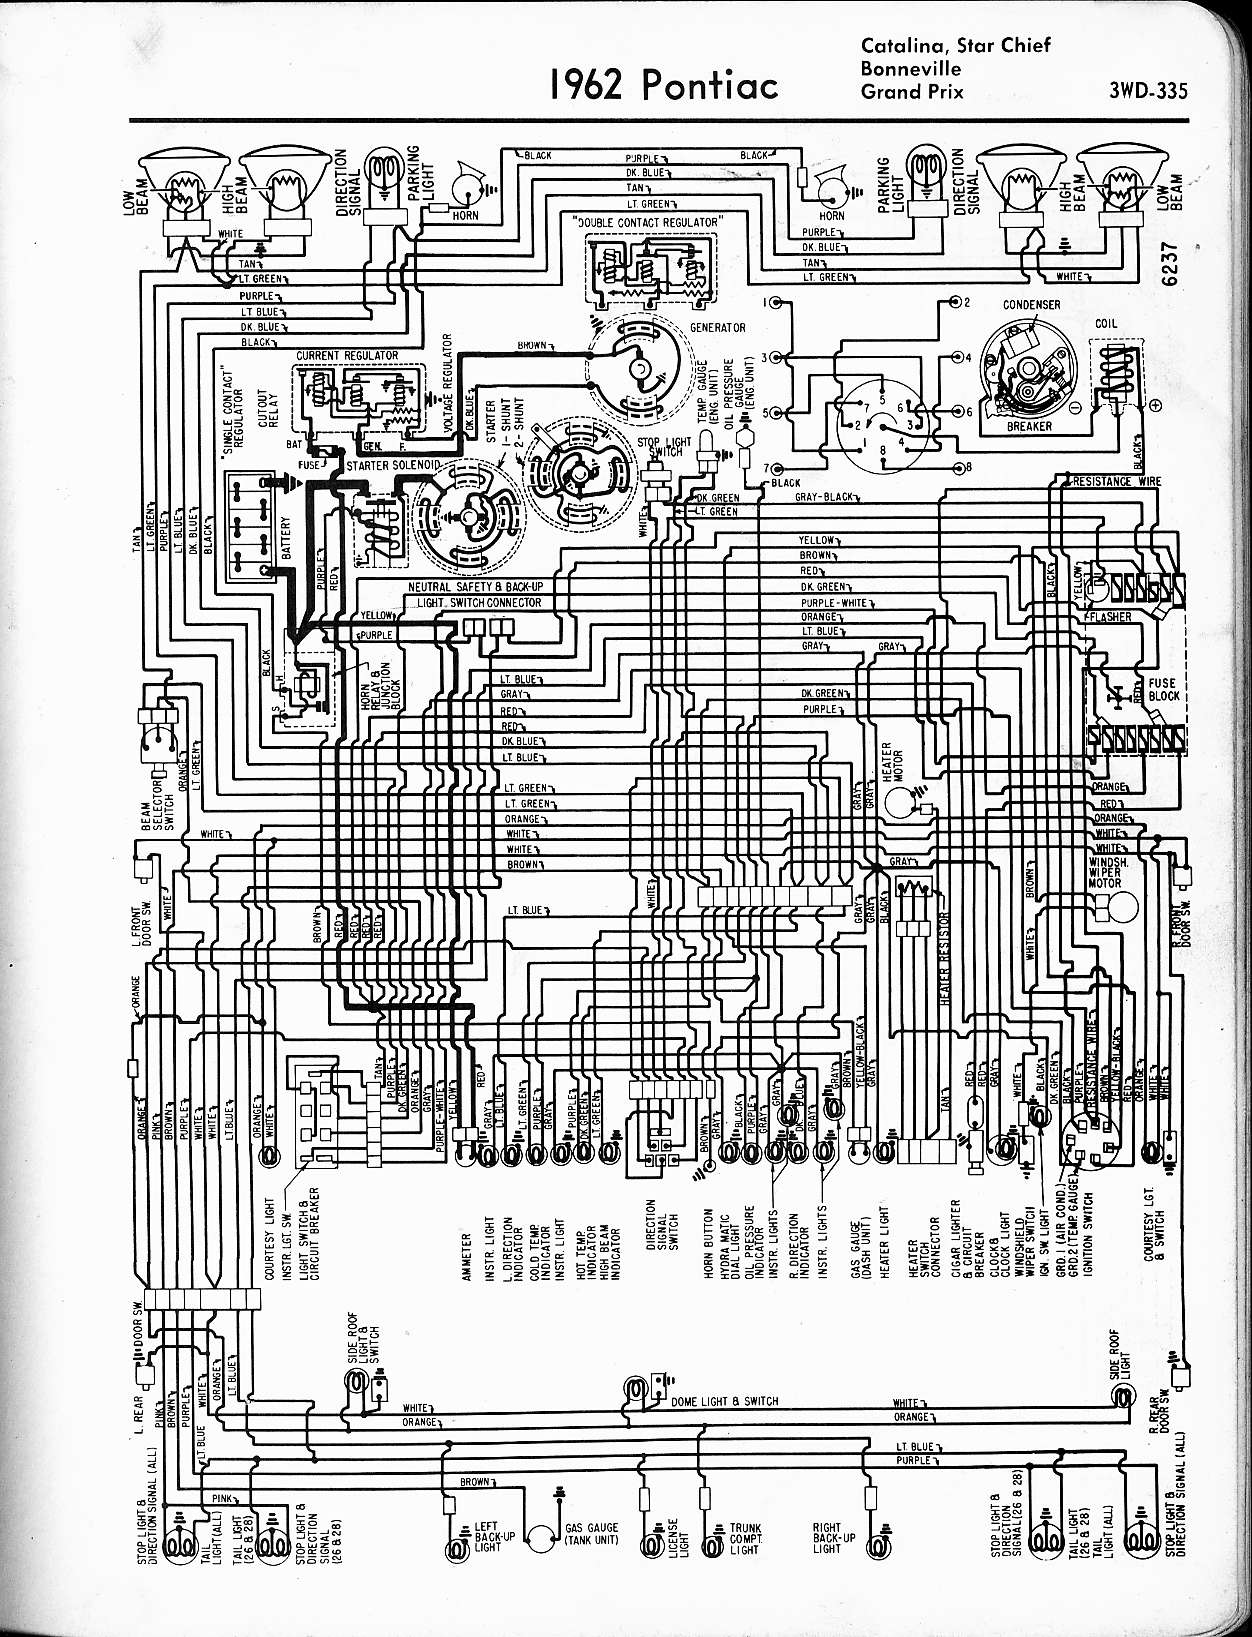 wallace racing wiring diagrams rh wallaceracing com 2001 Pontiac Grand Prix Wiring-Diagram 2006 Pontiac Grand Prix Radio Wiring Diagram